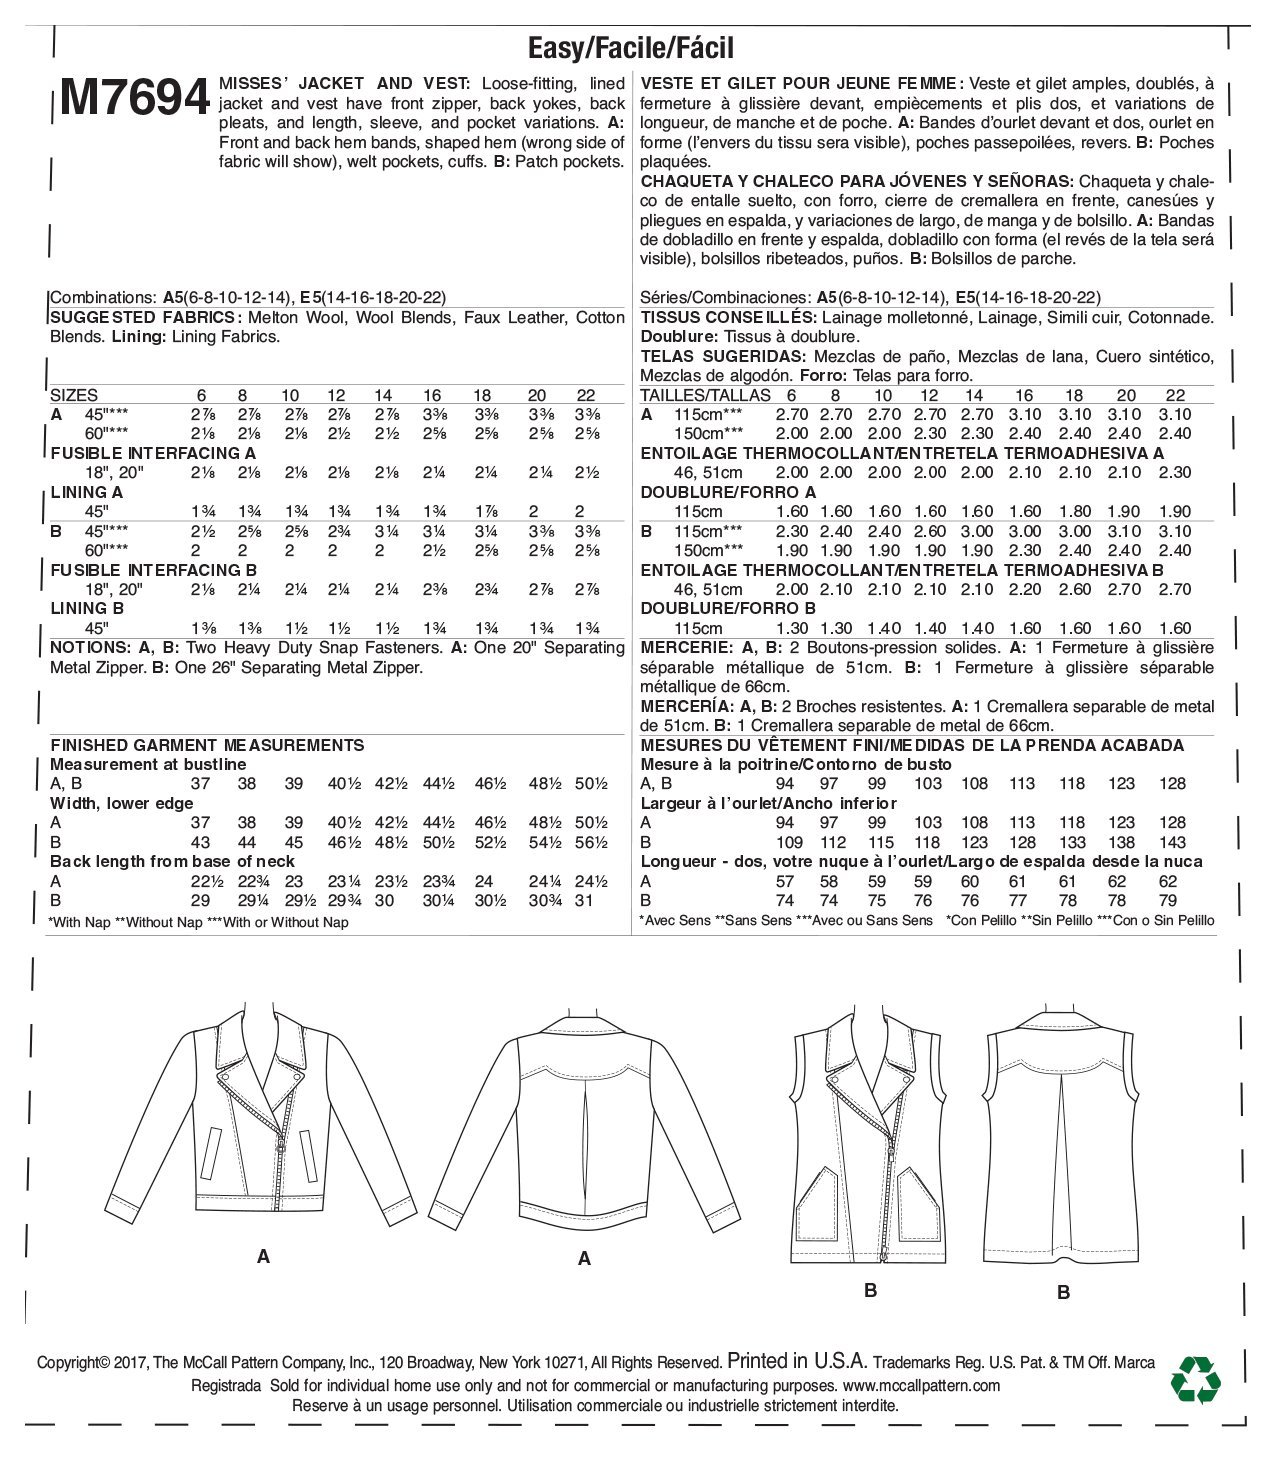 Amazon.com: McCall Patterns M7694A50 Misses Moto-Style Jacket and Vest: Arts, Crafts & Sewing